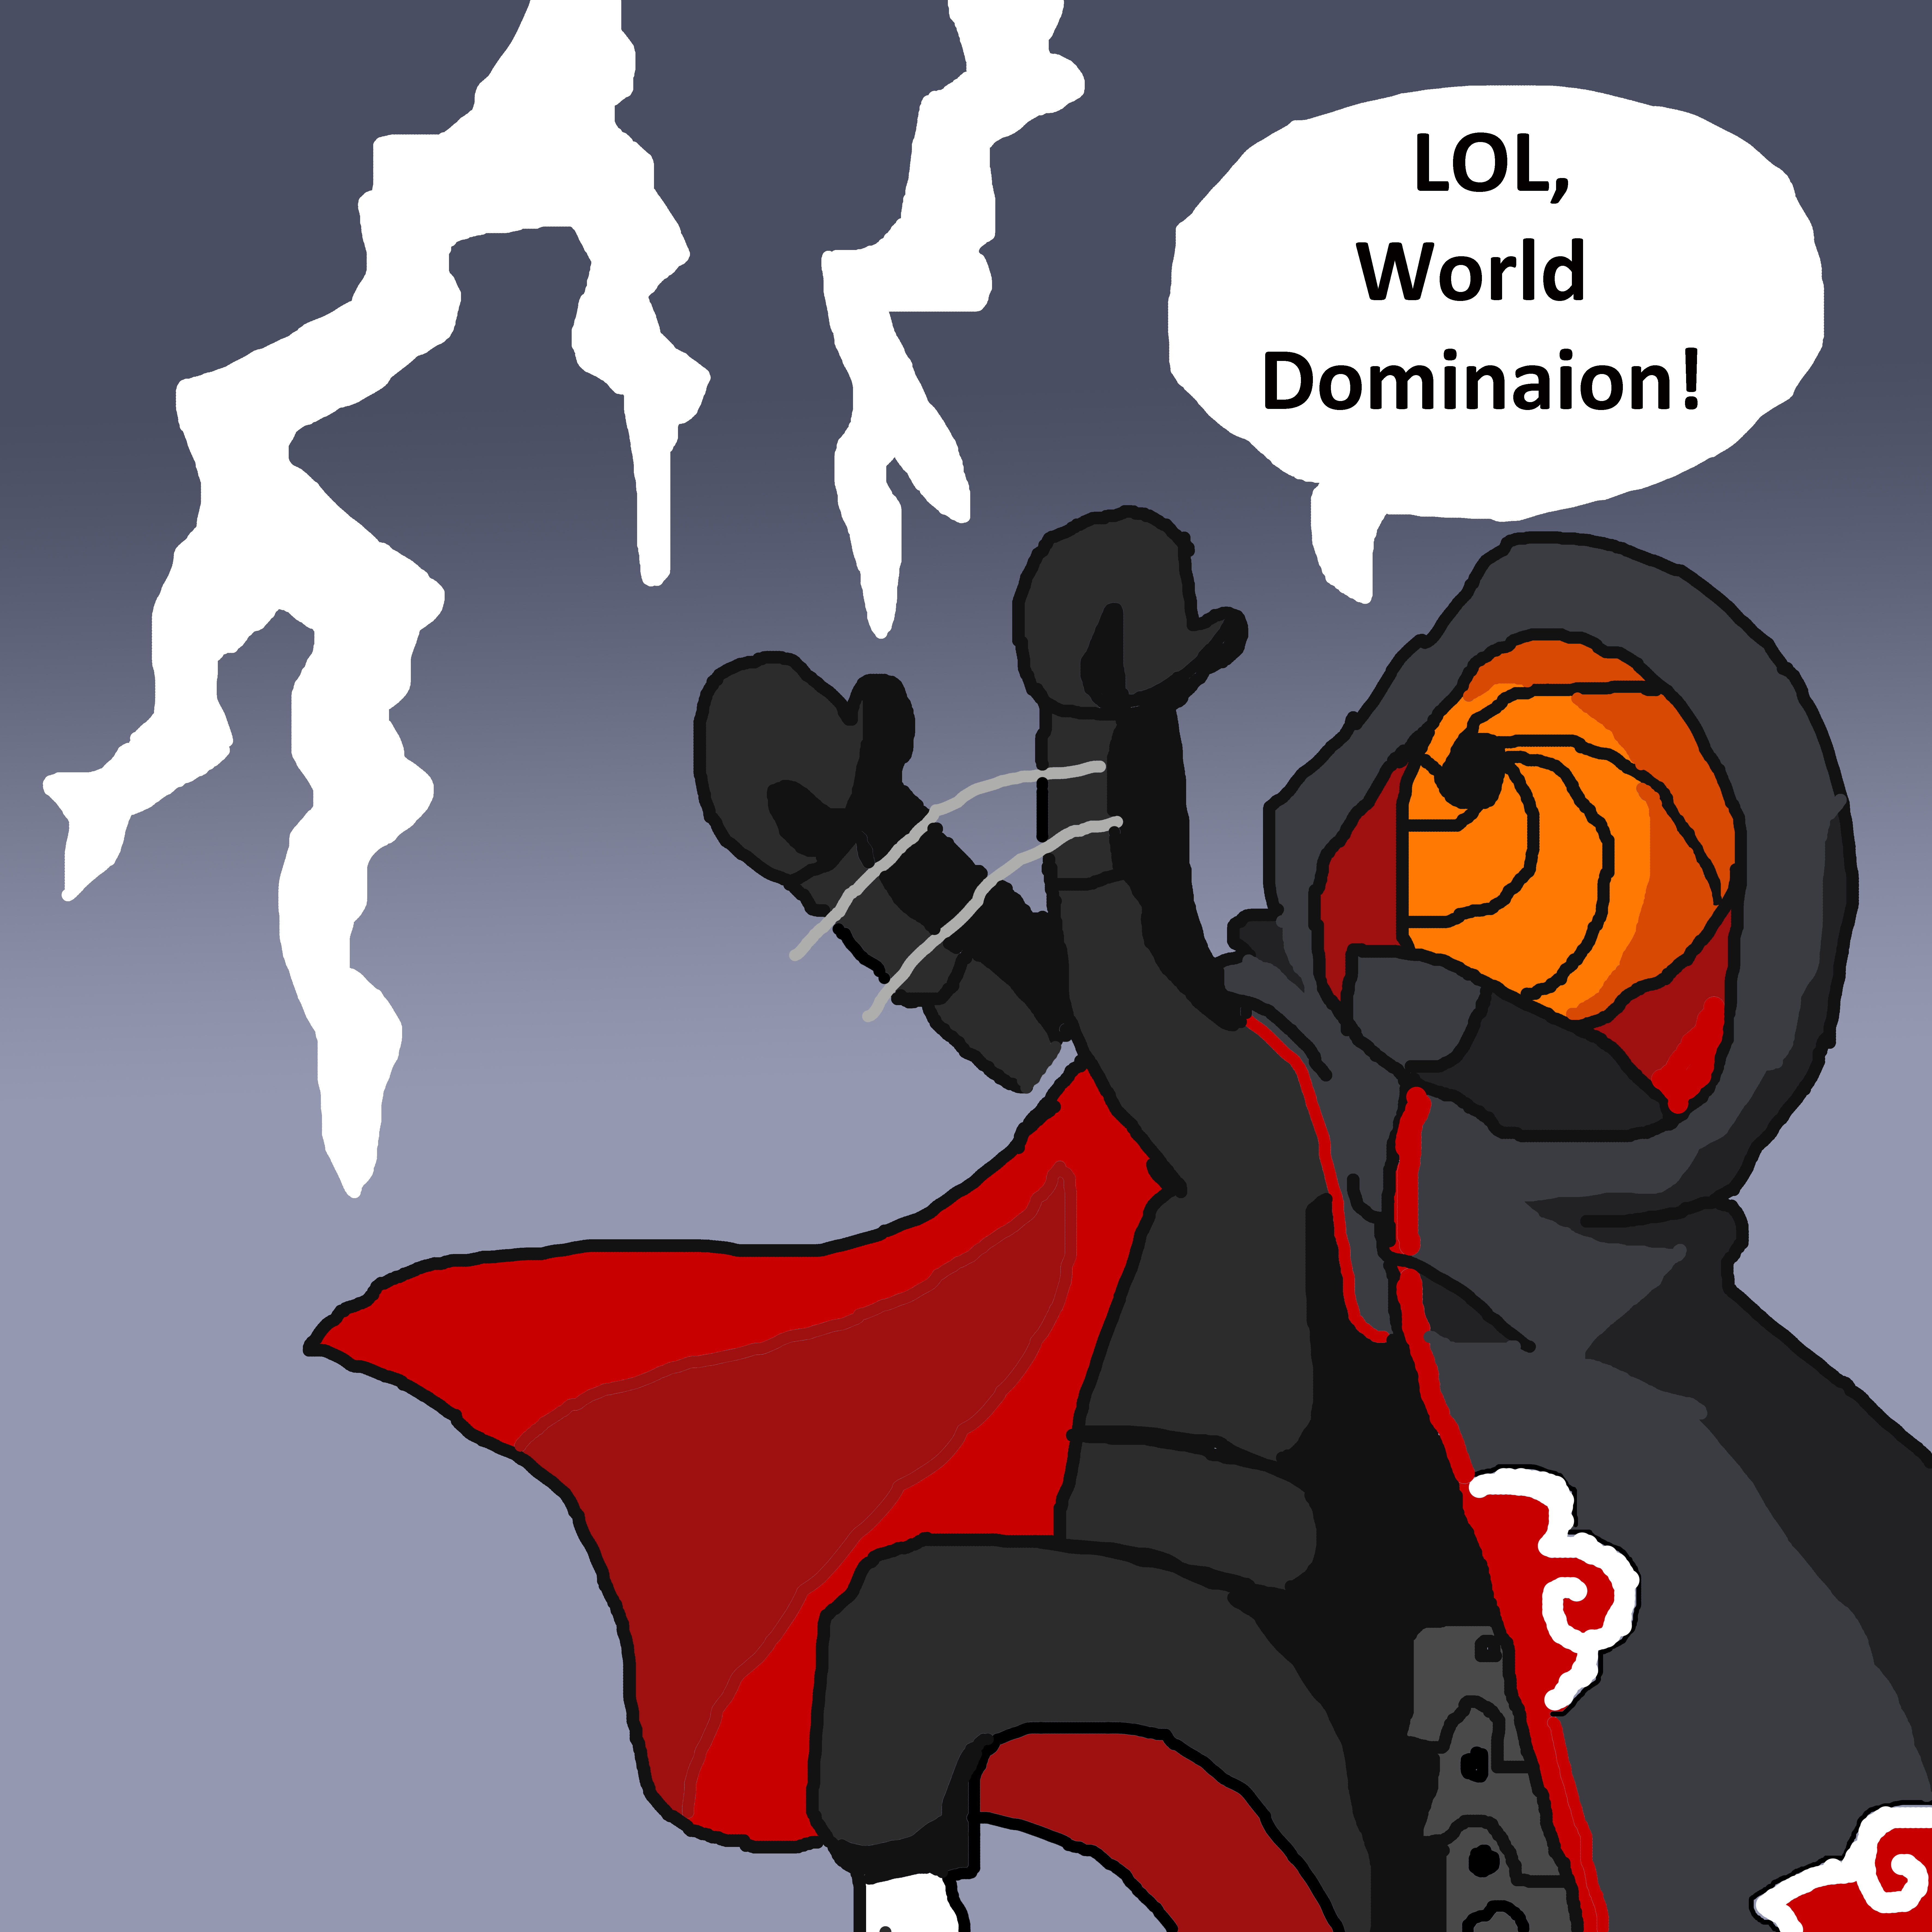 LOL WORLD DOMINATION Lol_world_domination_by_chicken23-d46lc9o